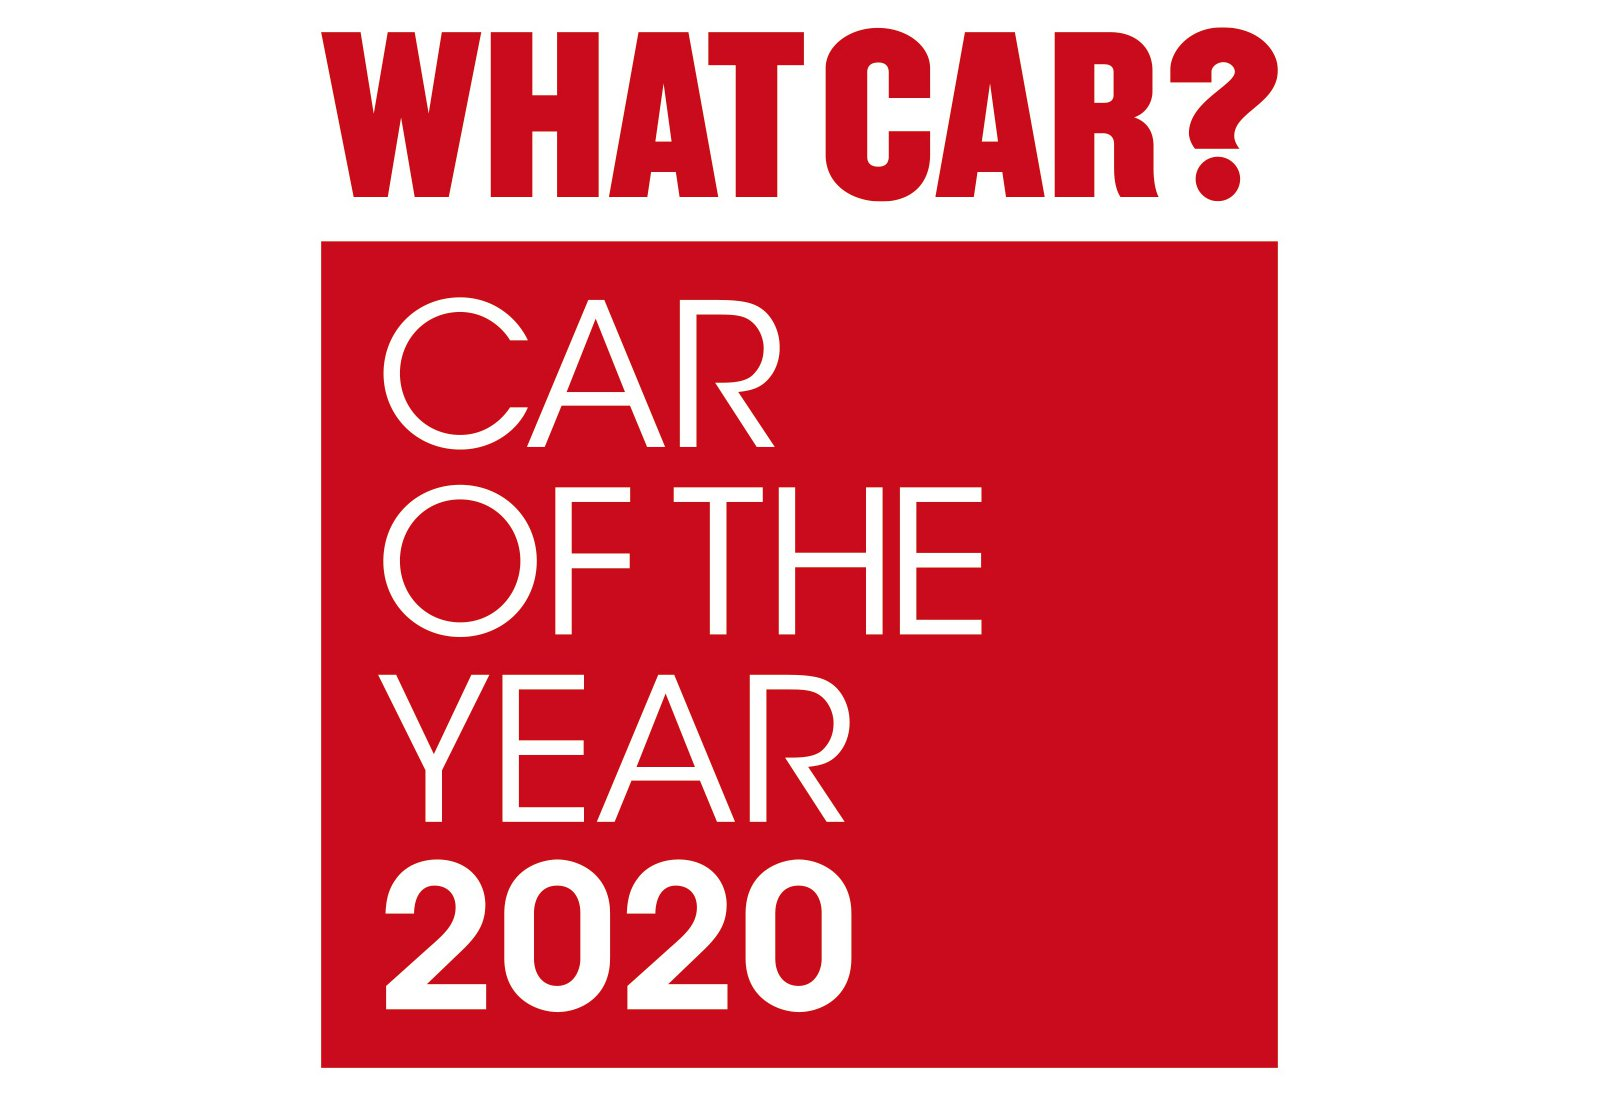 What Car? Car of the Year 2020 logo